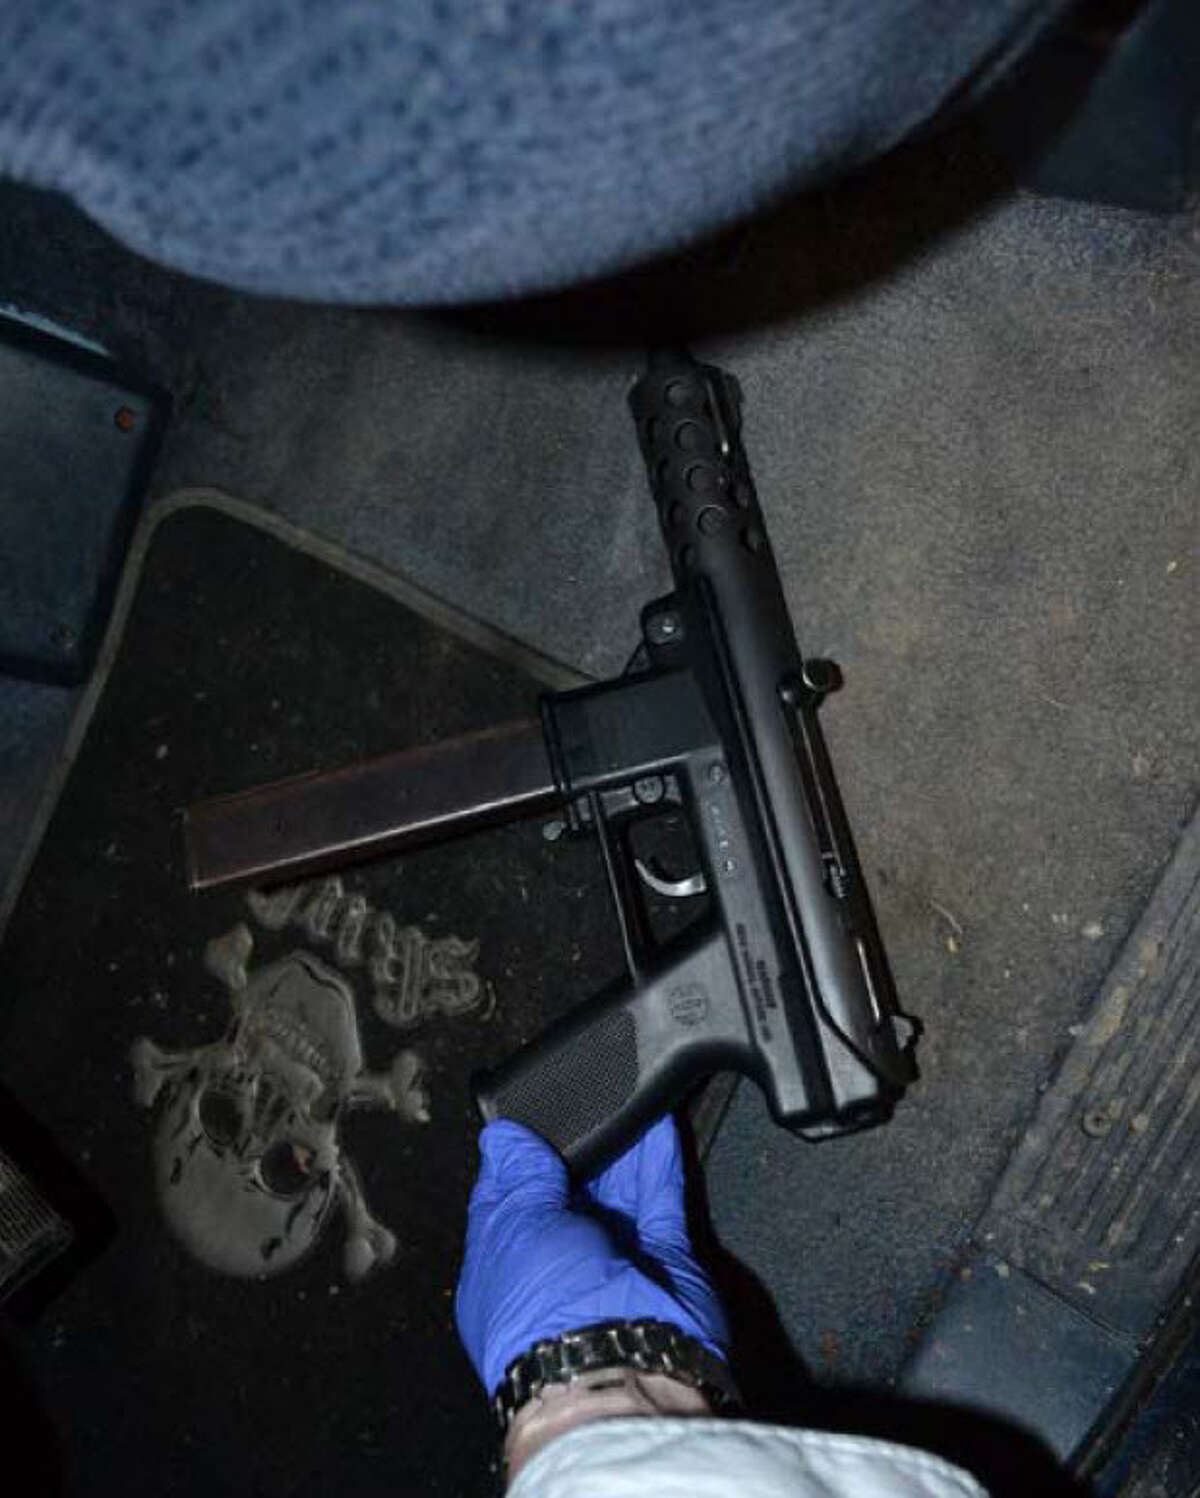 Paul Esparza, 24, was sentenced Tuesday to a four-year term in federal prison for gun crimes. Police found this pistol inside his car during a March 2017 encounter.